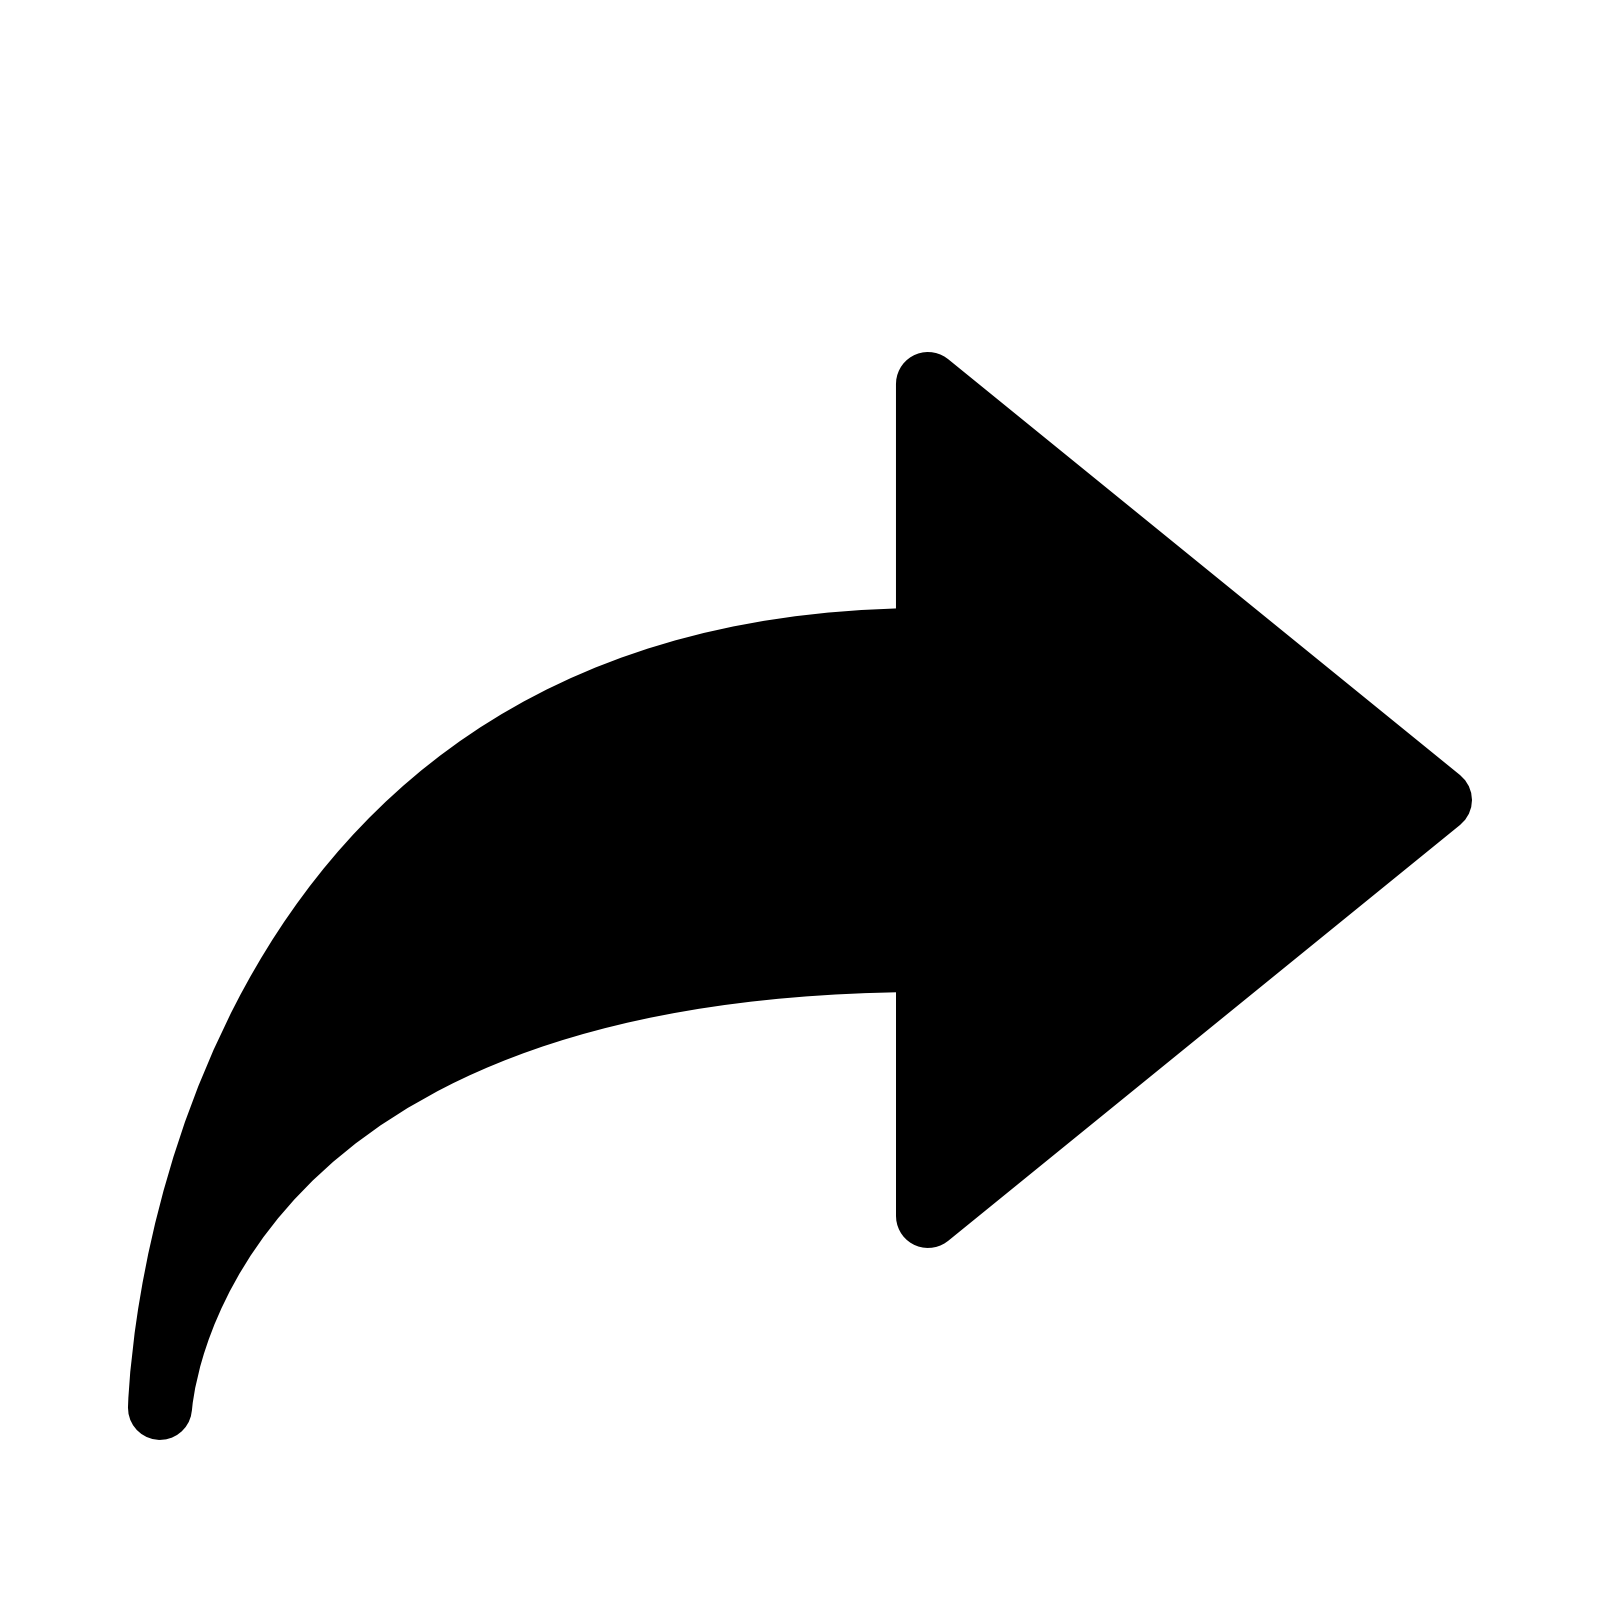 Forward Arrow Filled icon - Arrow PNG - Analy Repostera Vector PNG